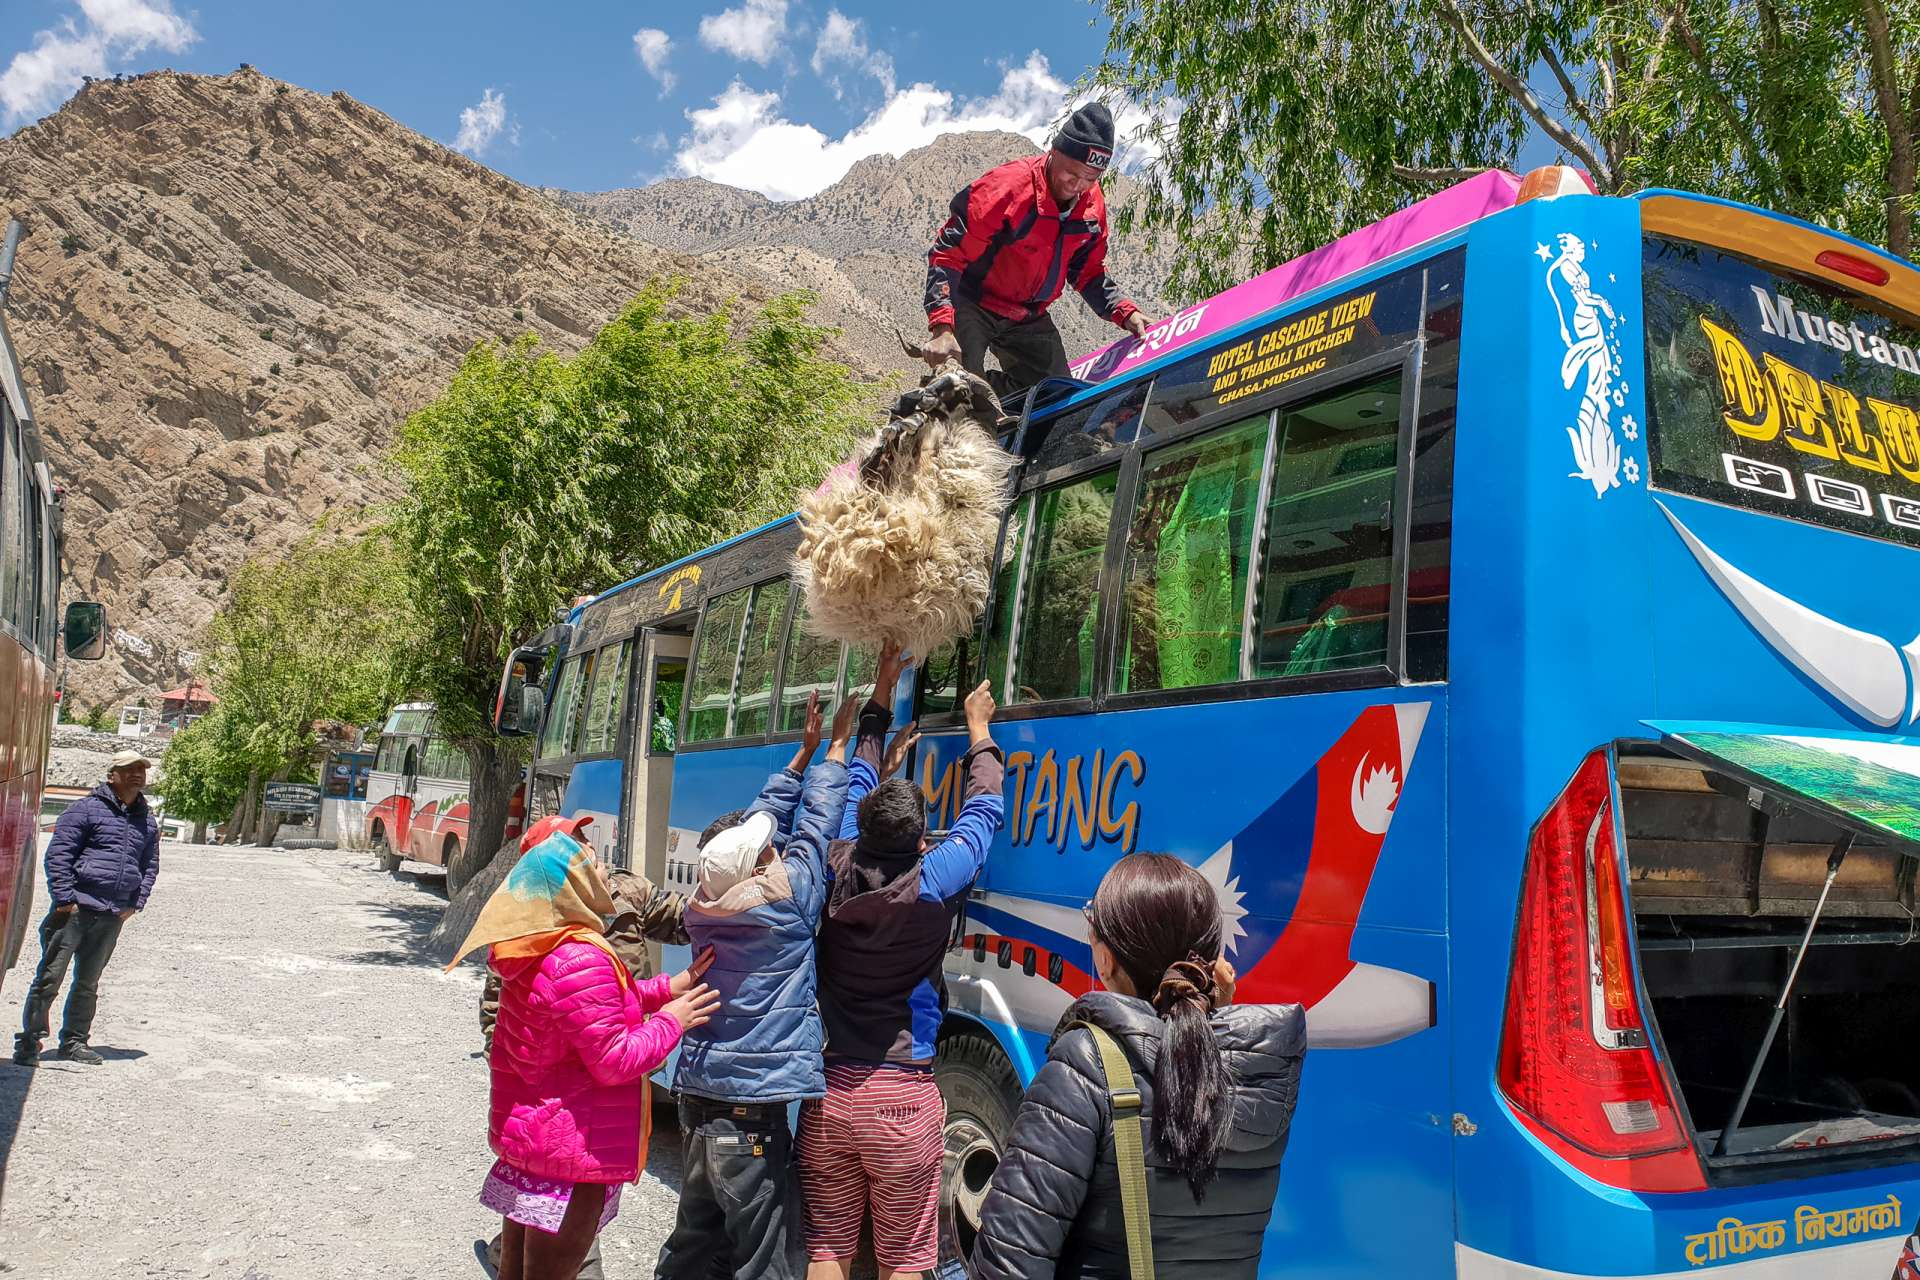 Nepal Annapurna Circuit trekking ship on a bus